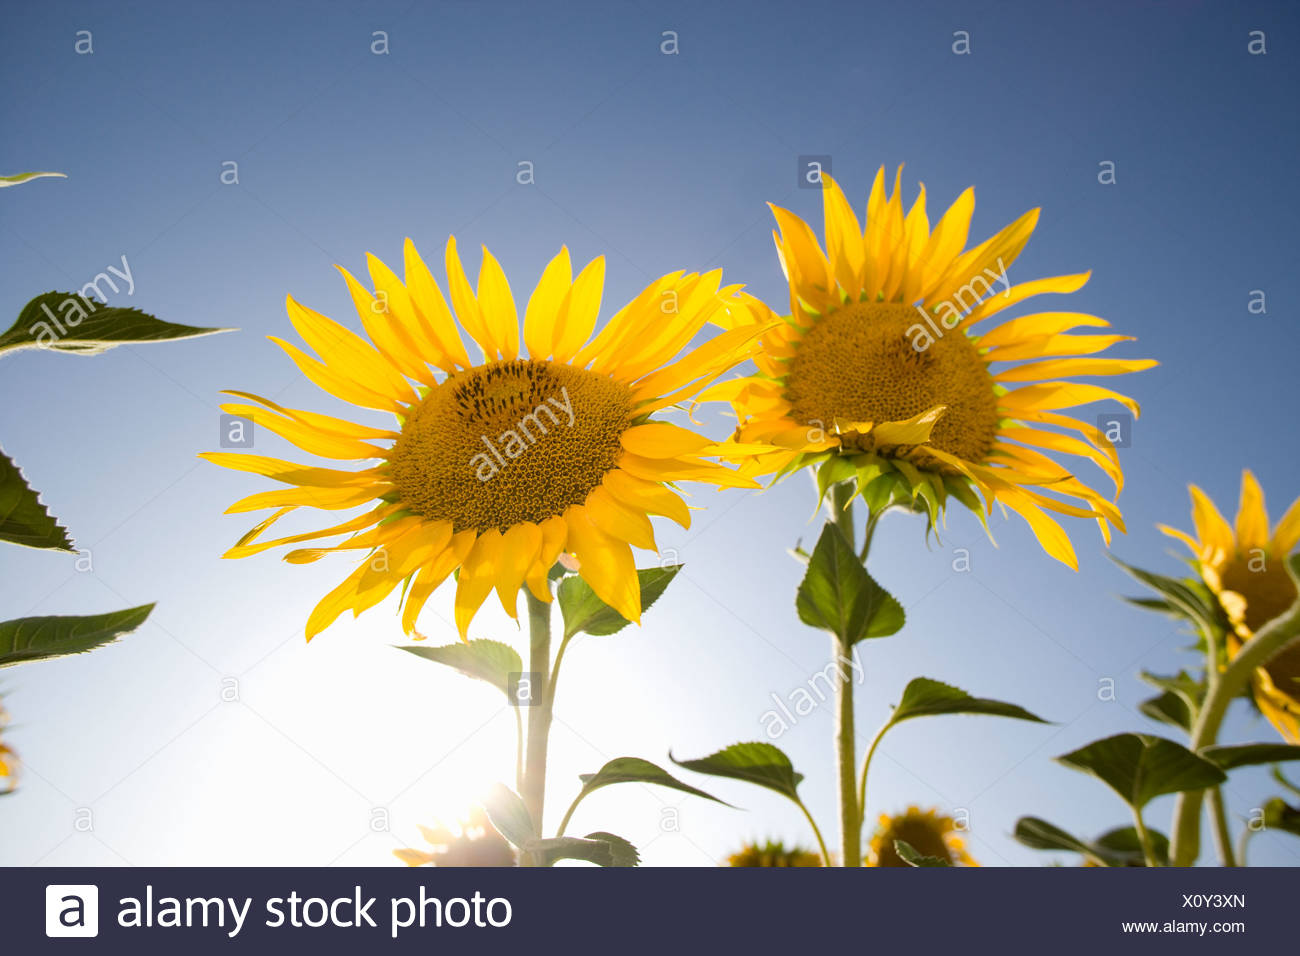 Sun shining in blue sky behind vibrant sunflowers - Stock Image